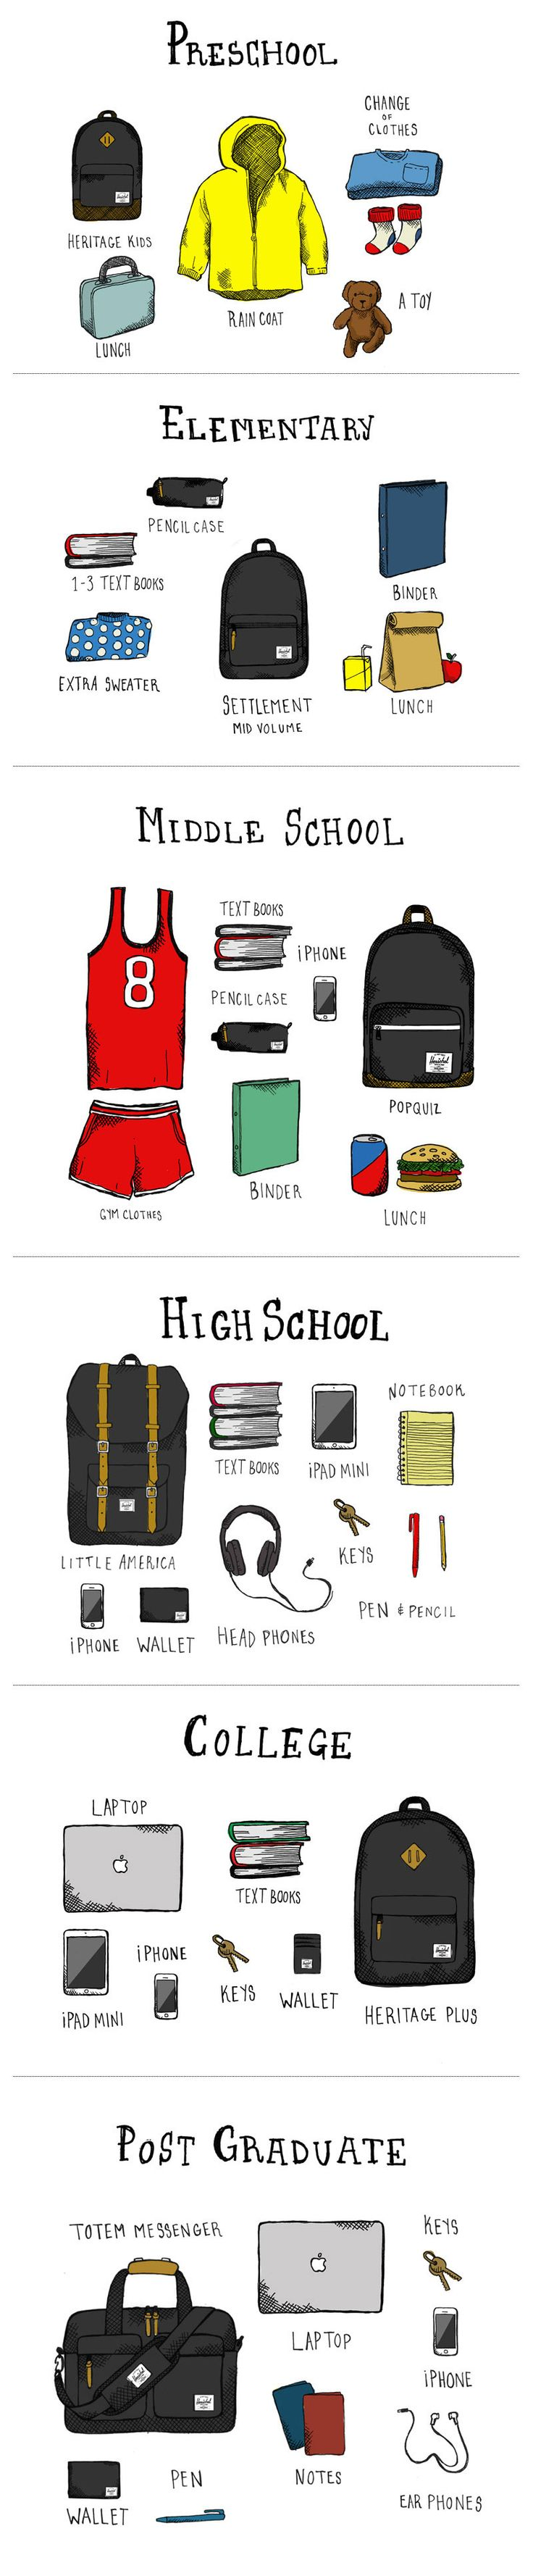 Stay ahead of the class this year with the right bag and accessories. View Herschel Supply's Back To School essentials to keep you prepared all year...